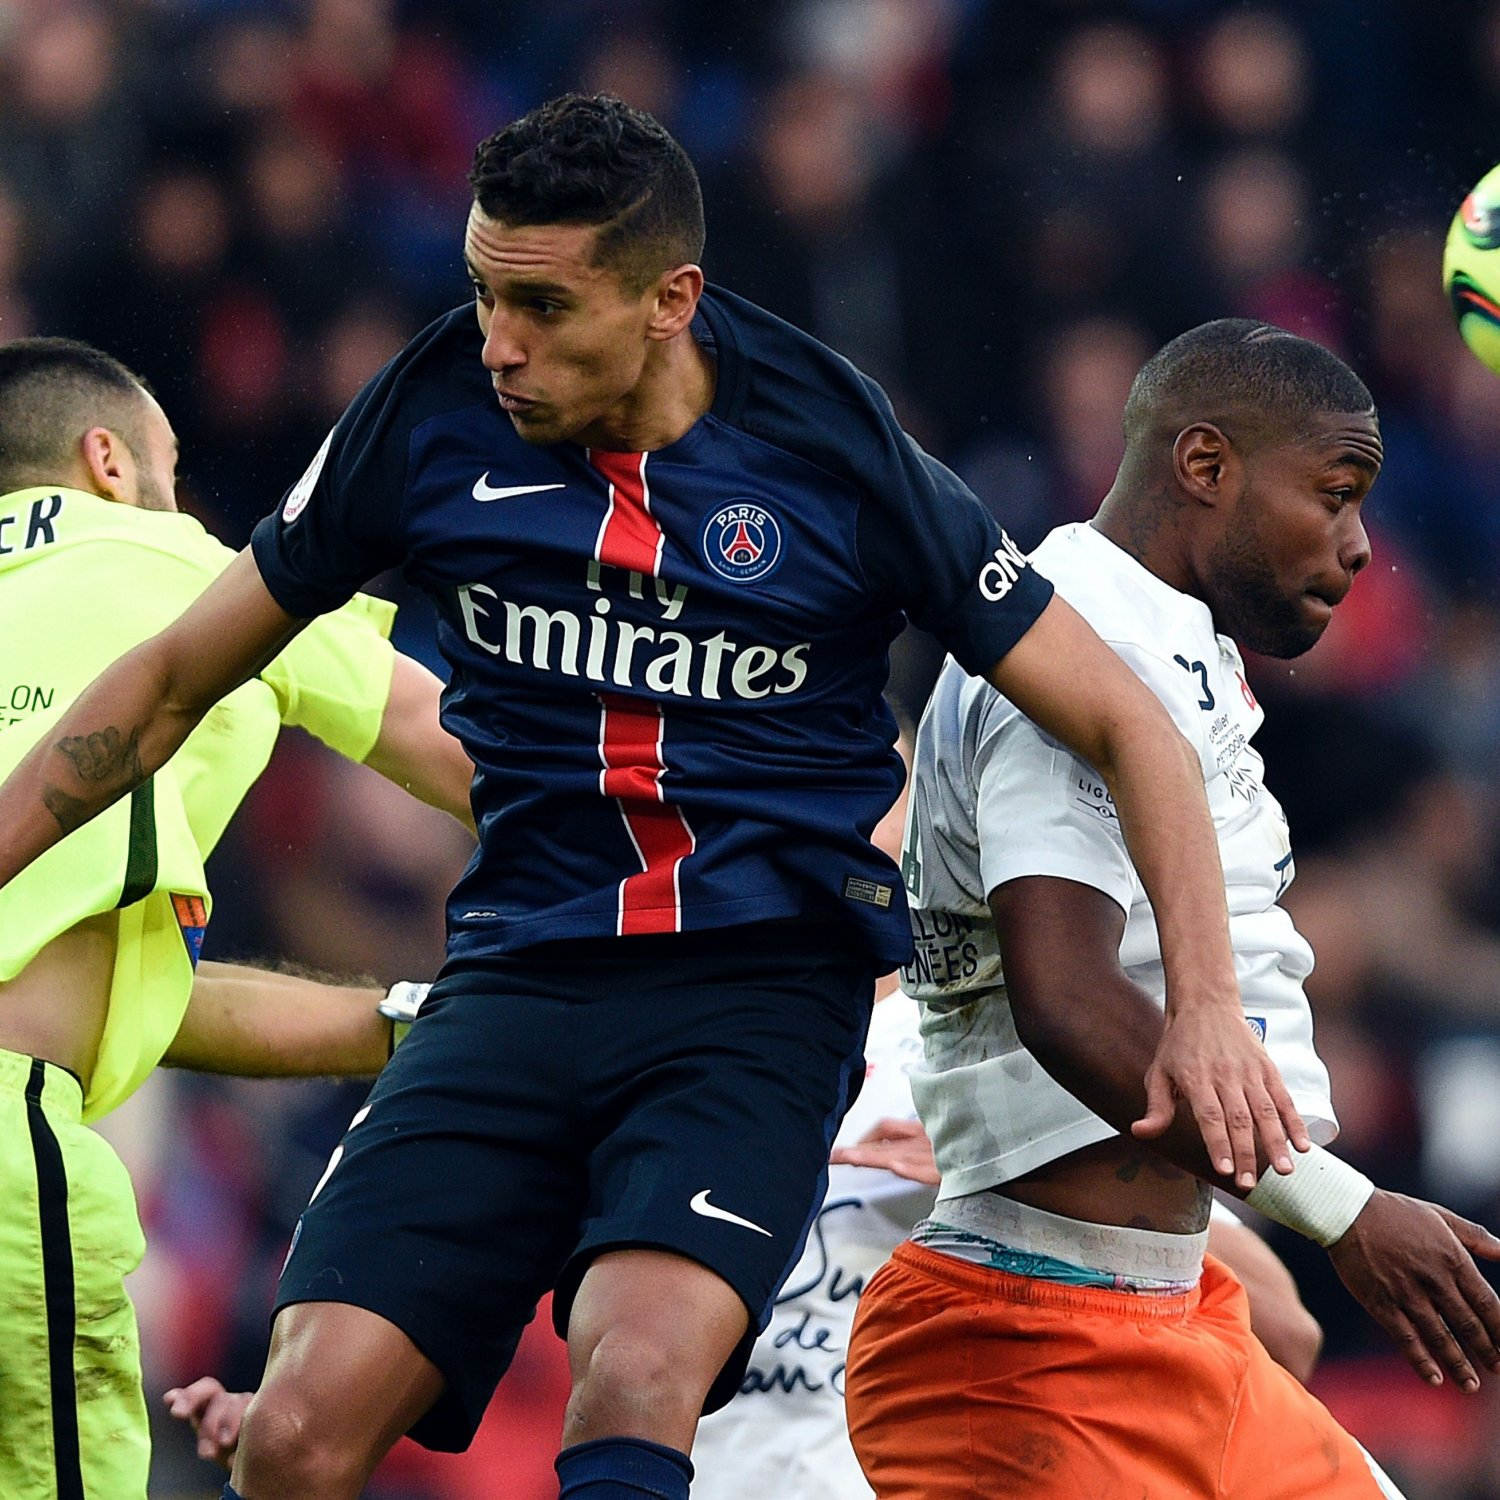 Malmo Vs Psg Winners And Losers From Champions League: PSG Vs. Montpellier: Winners And Losers From Ligue 1 Game